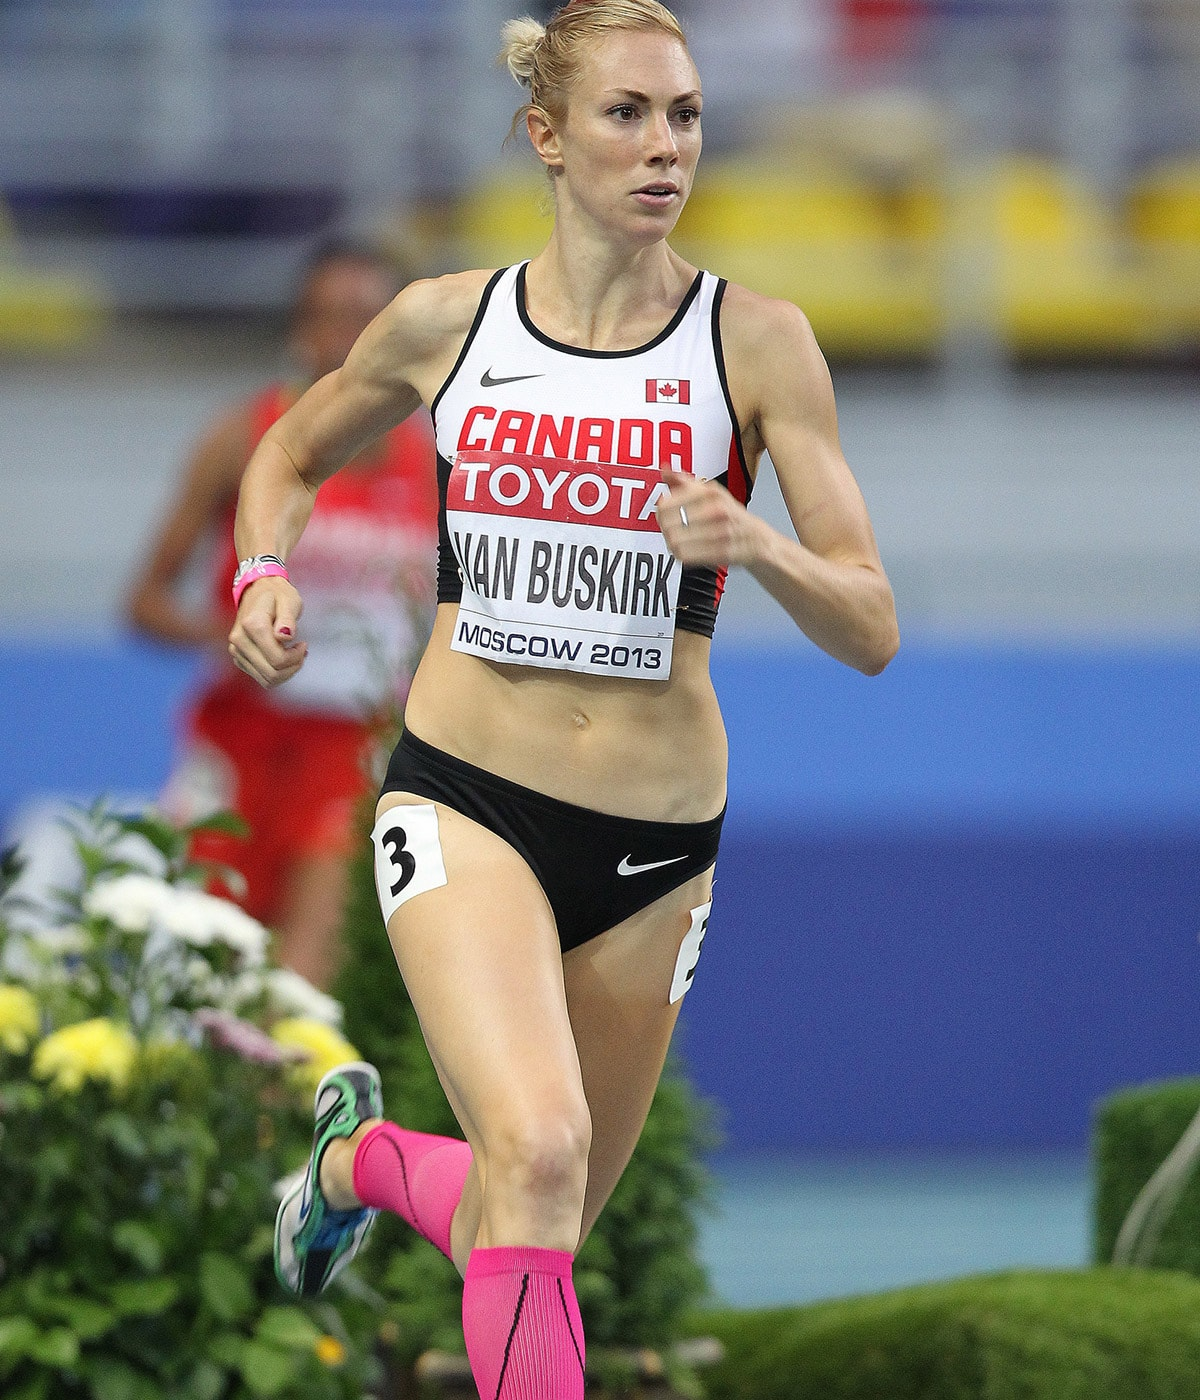 Kate Van Buskirk has paid a heavy price in her Olympic pursuit